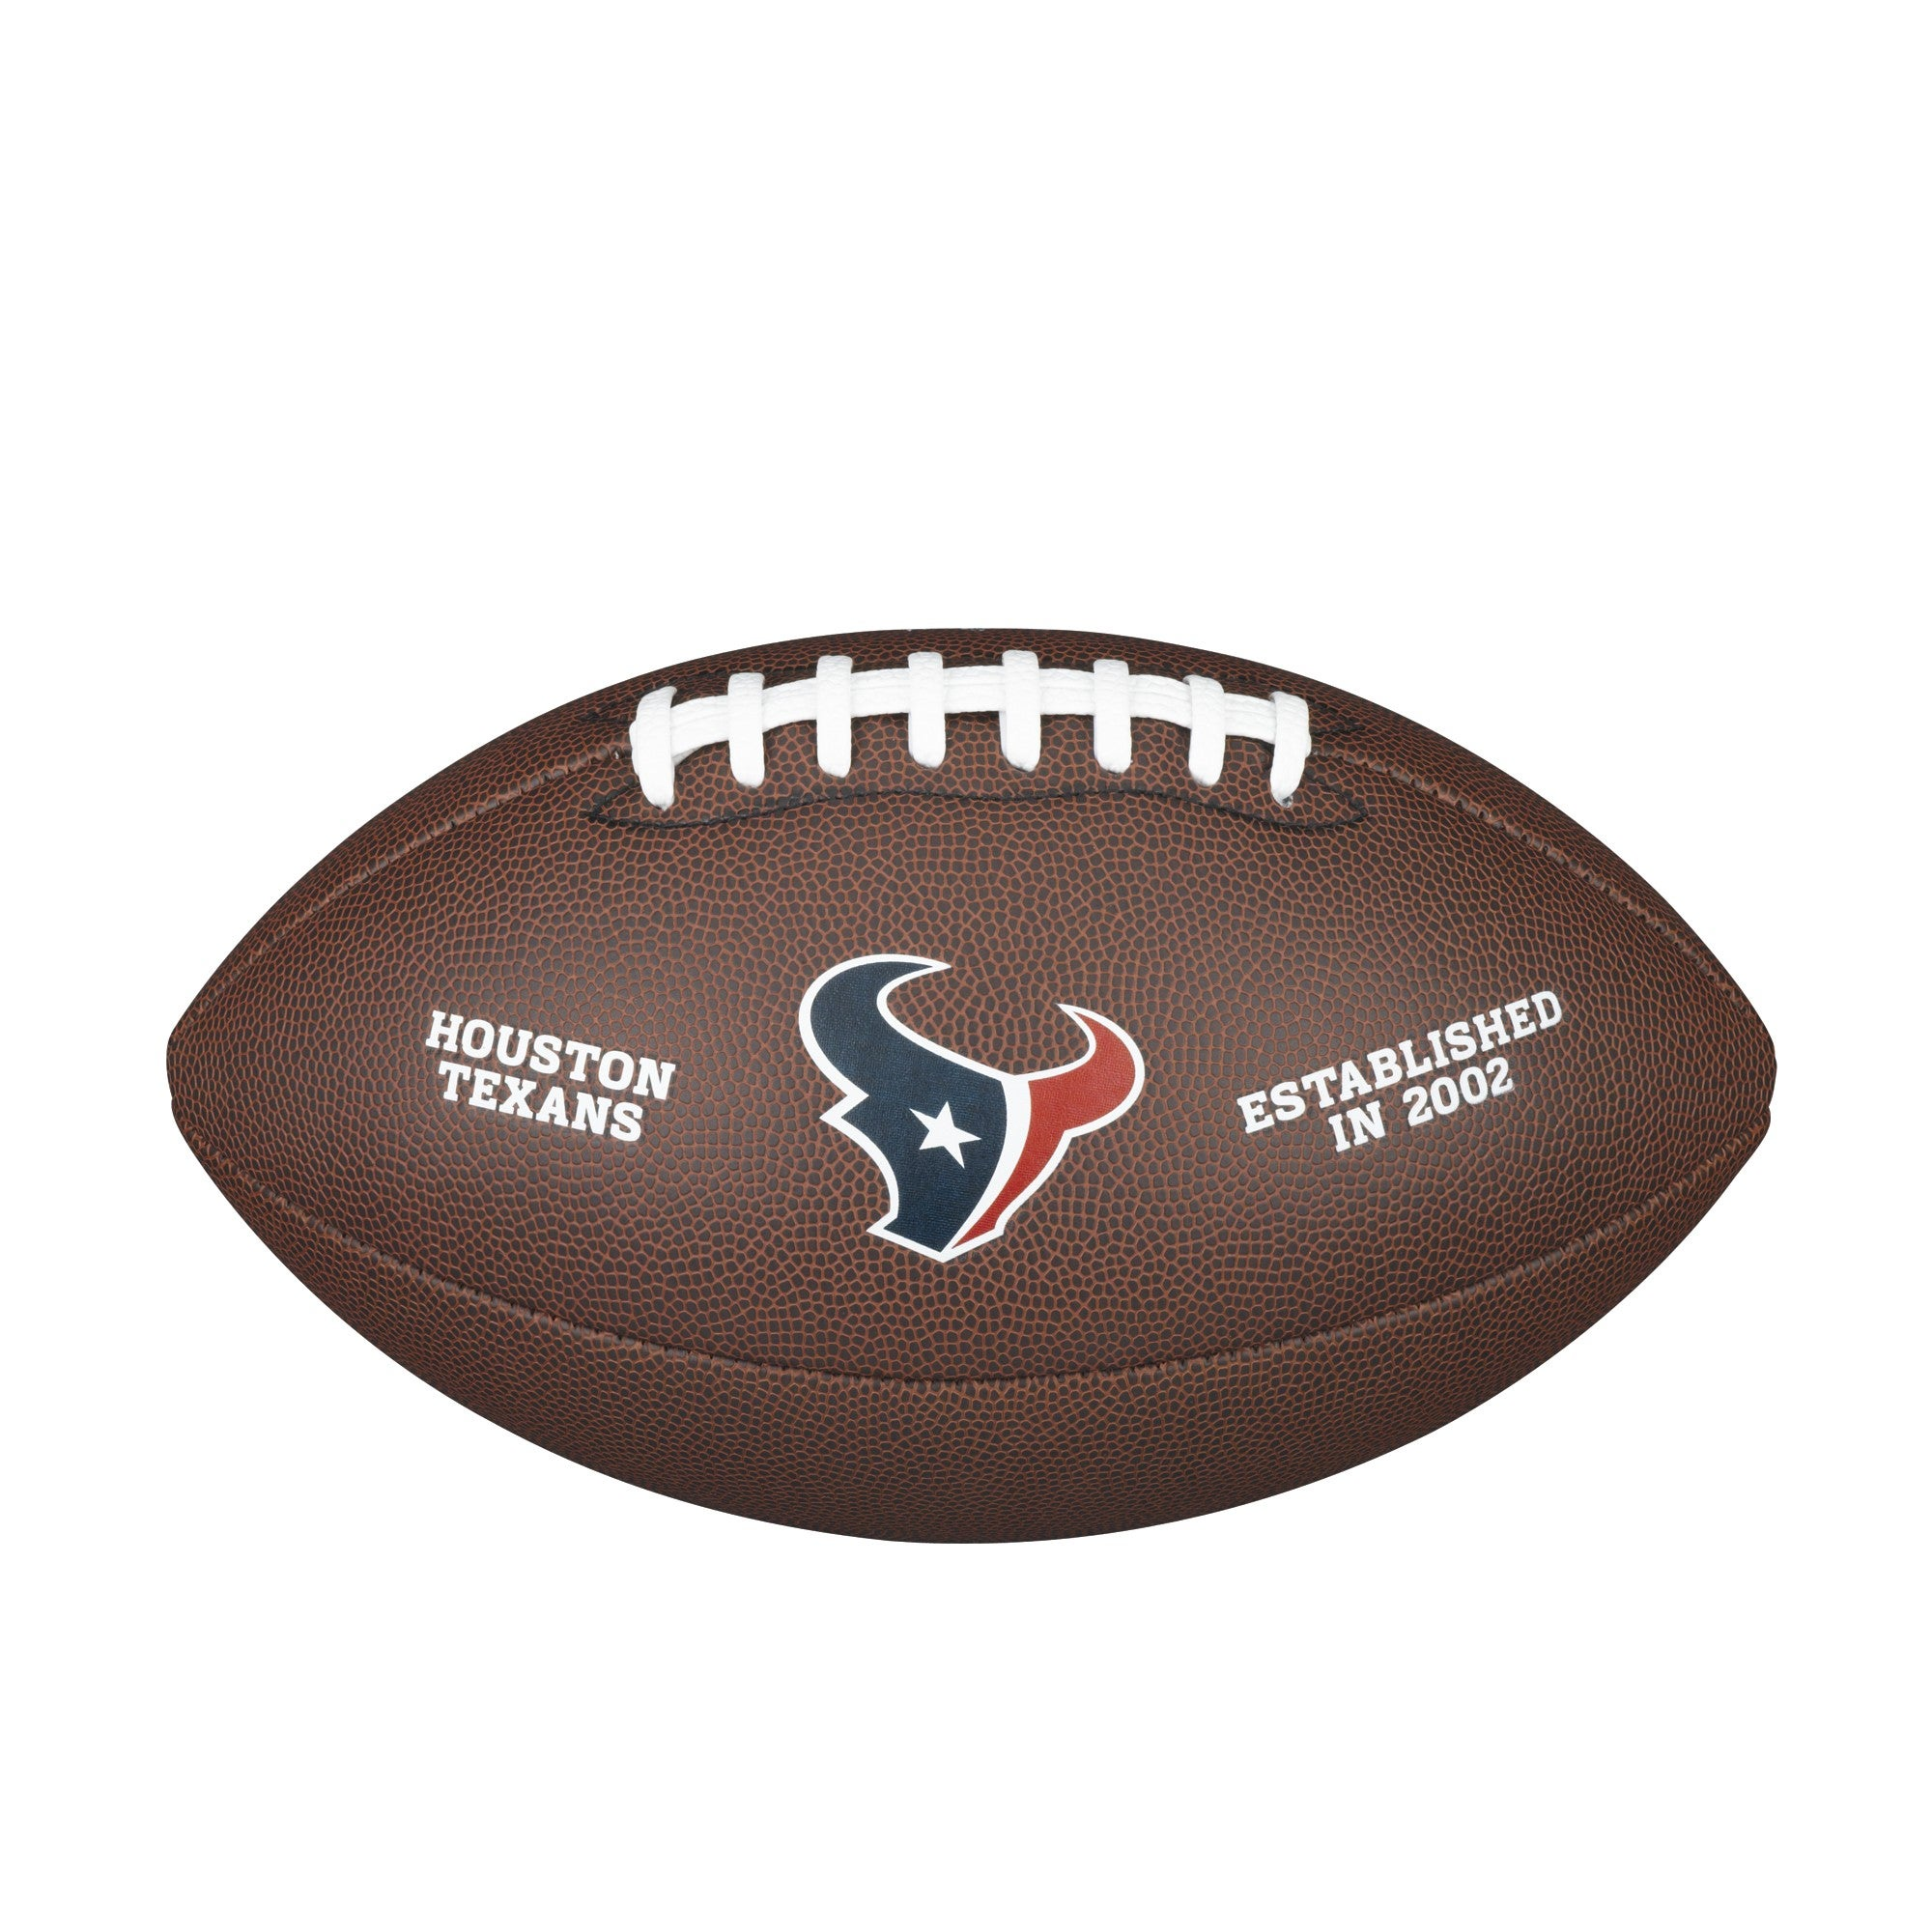 NFL TEAM LOGO COMPOSITE FOOTBALL - OFFICIAL, HOUSTON TEXANS